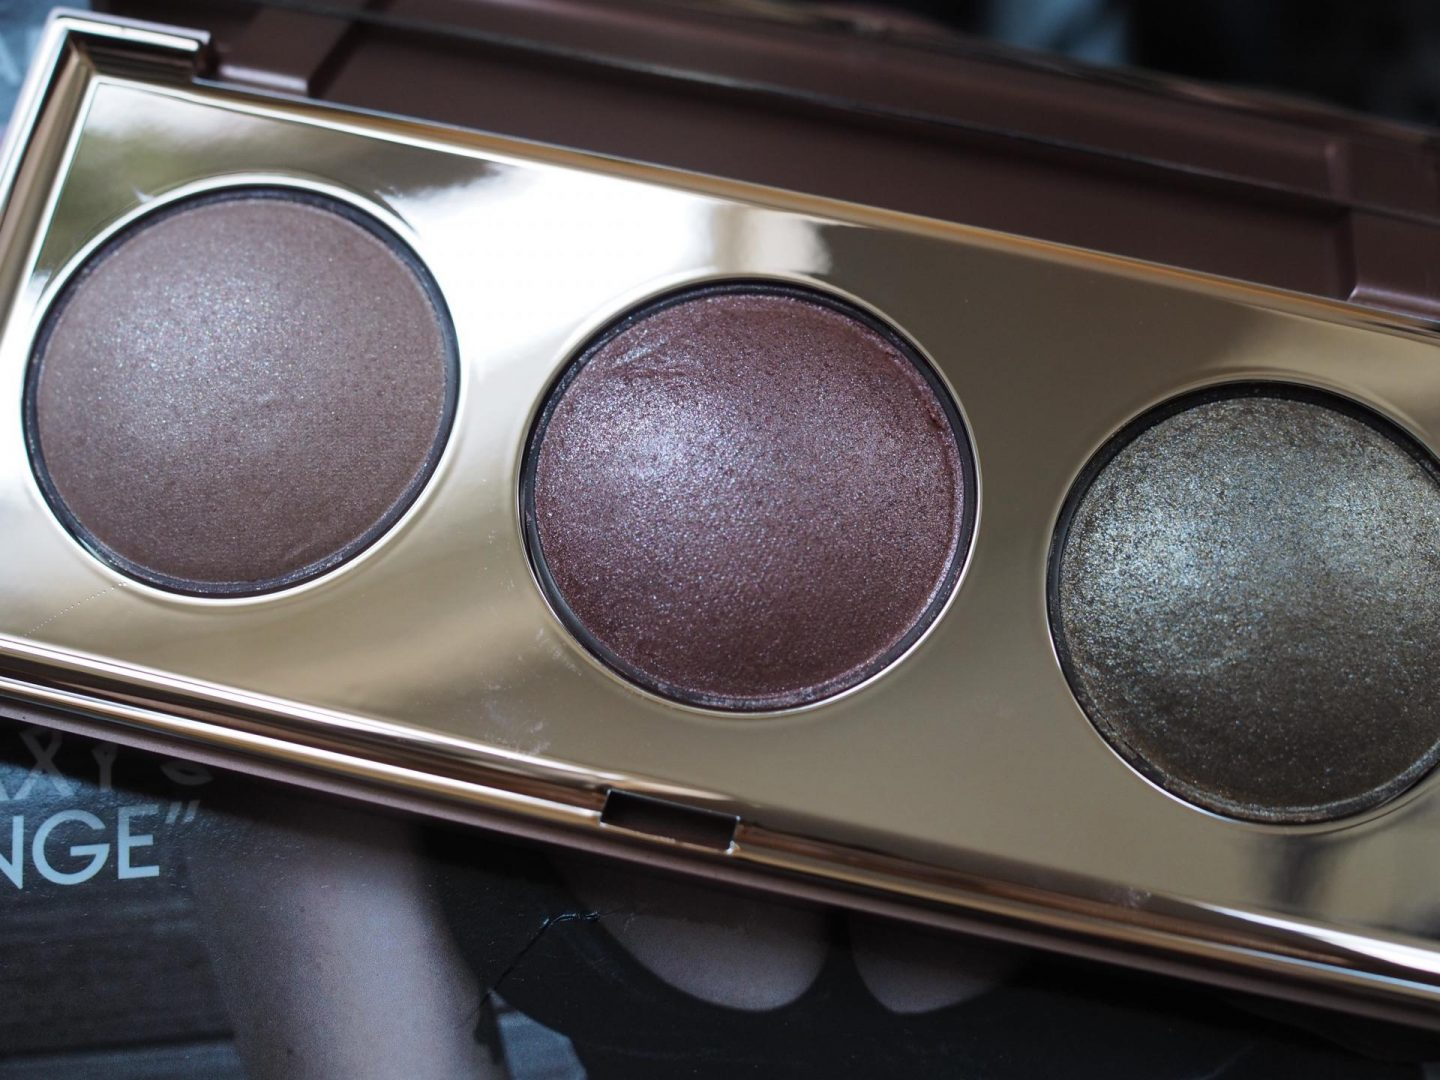 Stila Shine Bright Heaven's Dew Palette and holiday make-up look